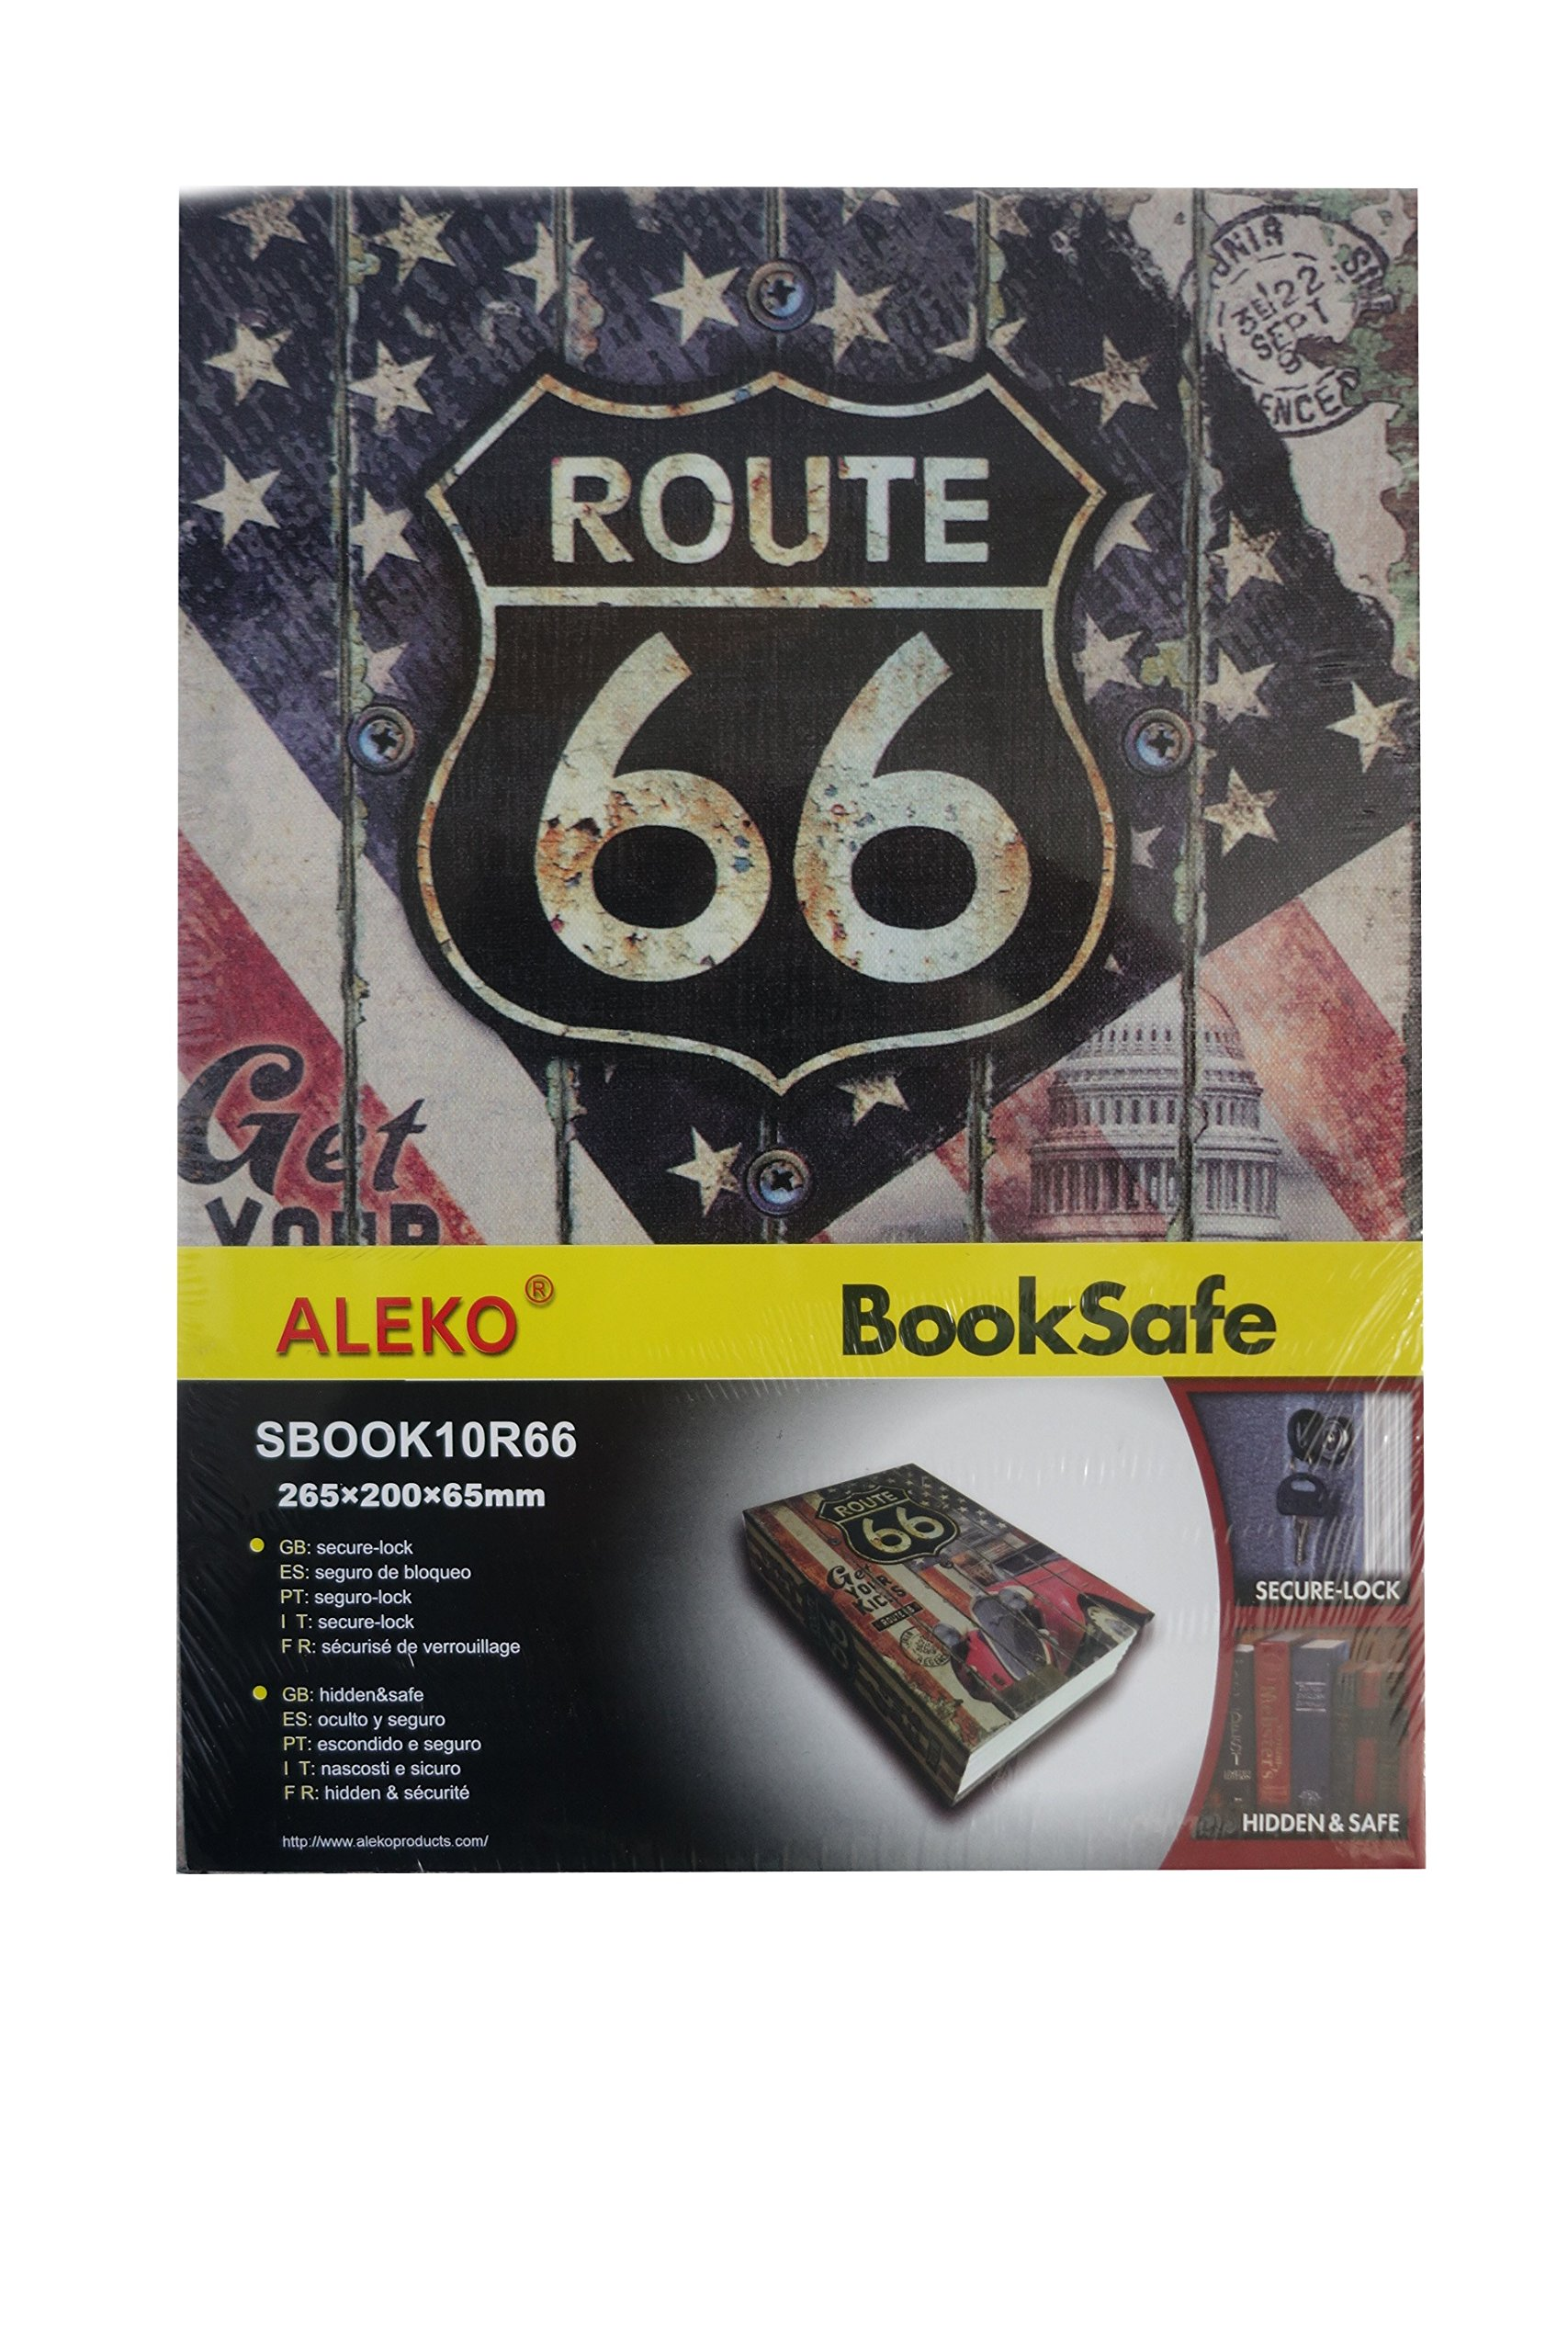 ALEKO Diversion Book Safe with Key Lock for Home, Business ROUTE 66 (265X200X65)